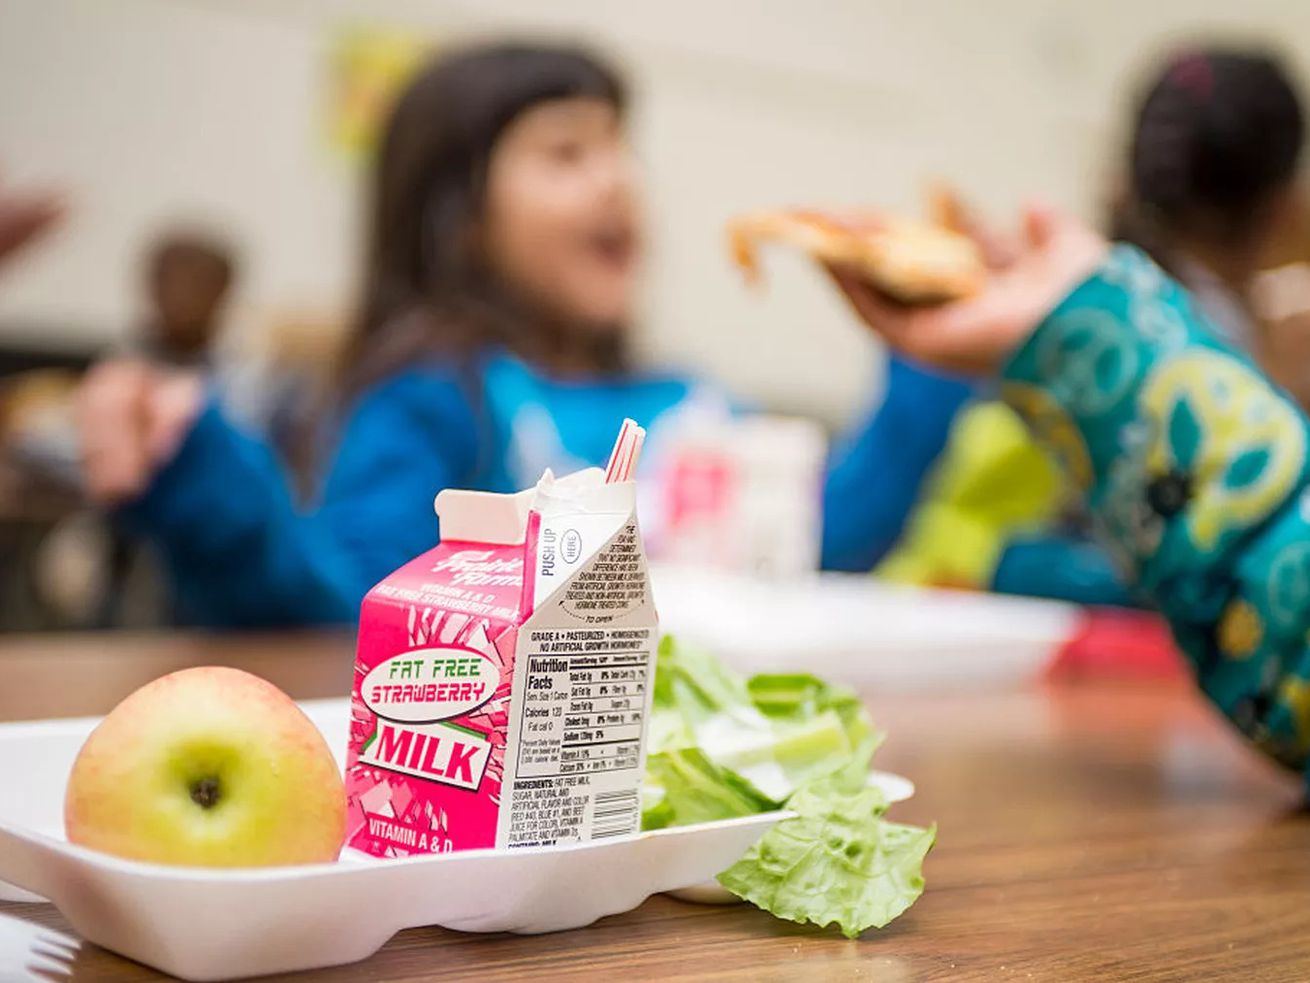 The Trump administration is rolling back key parts of the Healthy, Hunger-Free Kids Act of 2010.